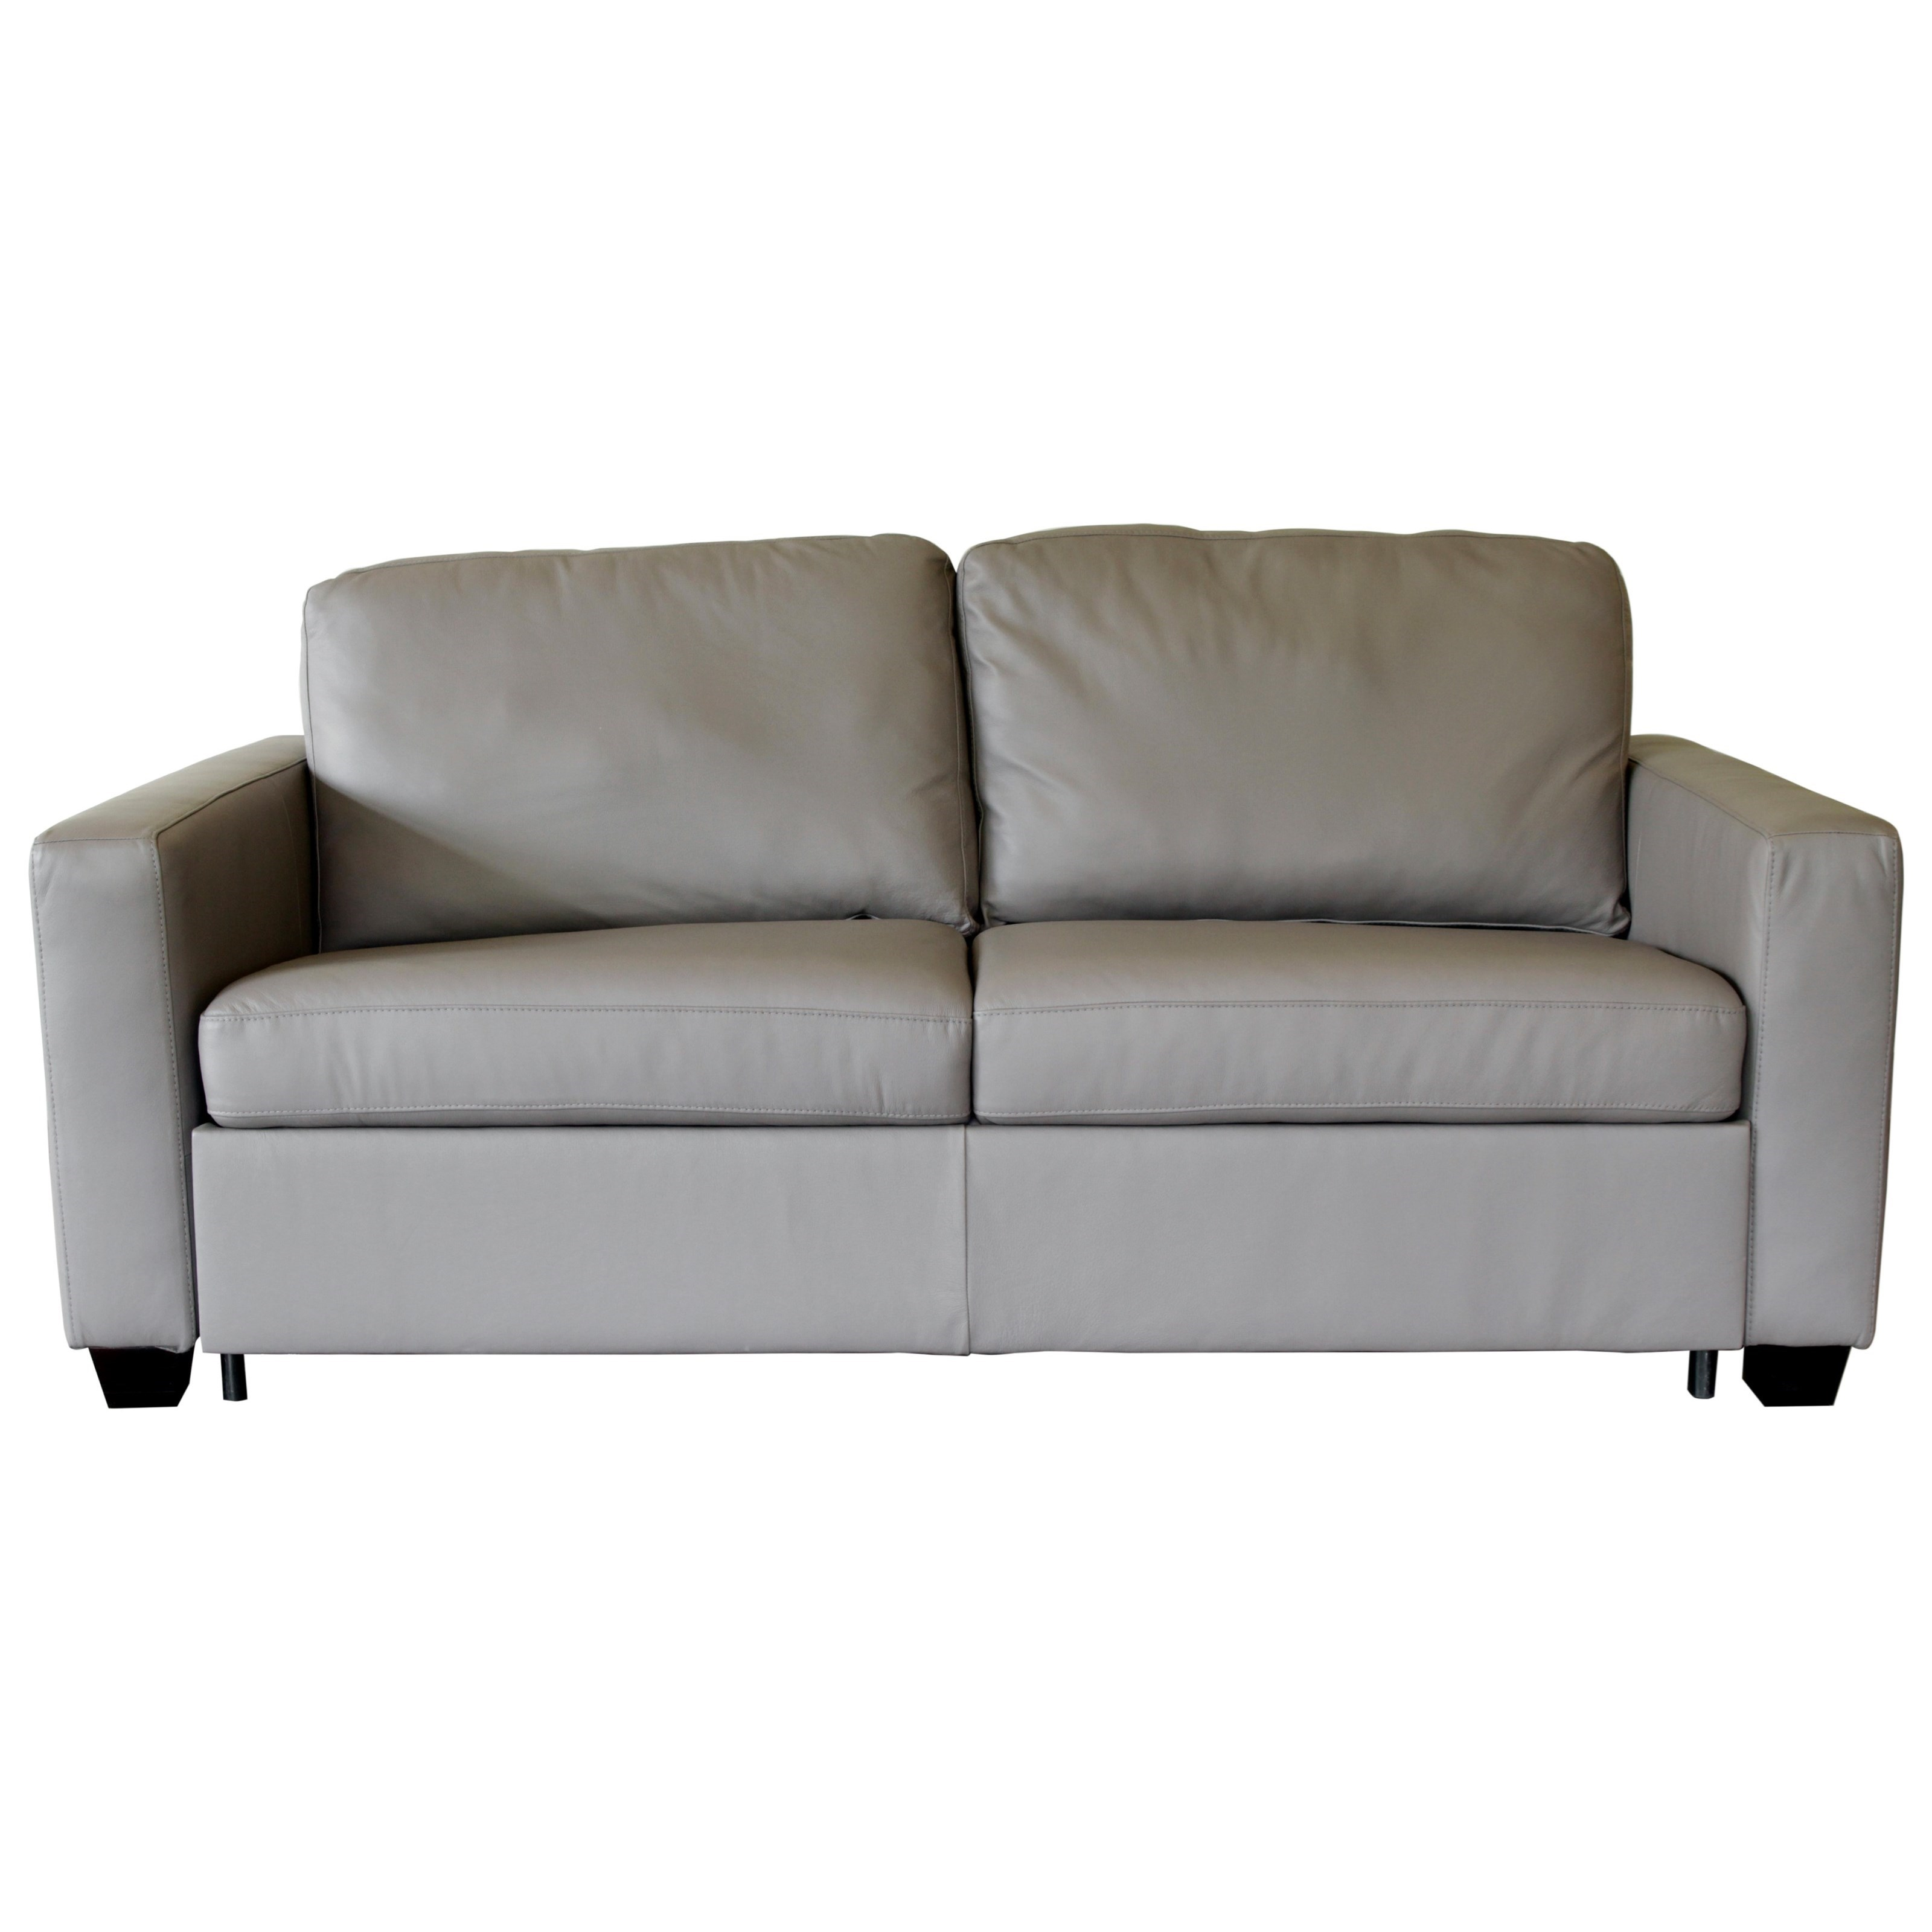 Kildonan Double Sofa Sleeper by Palliser at Belfort Furniture